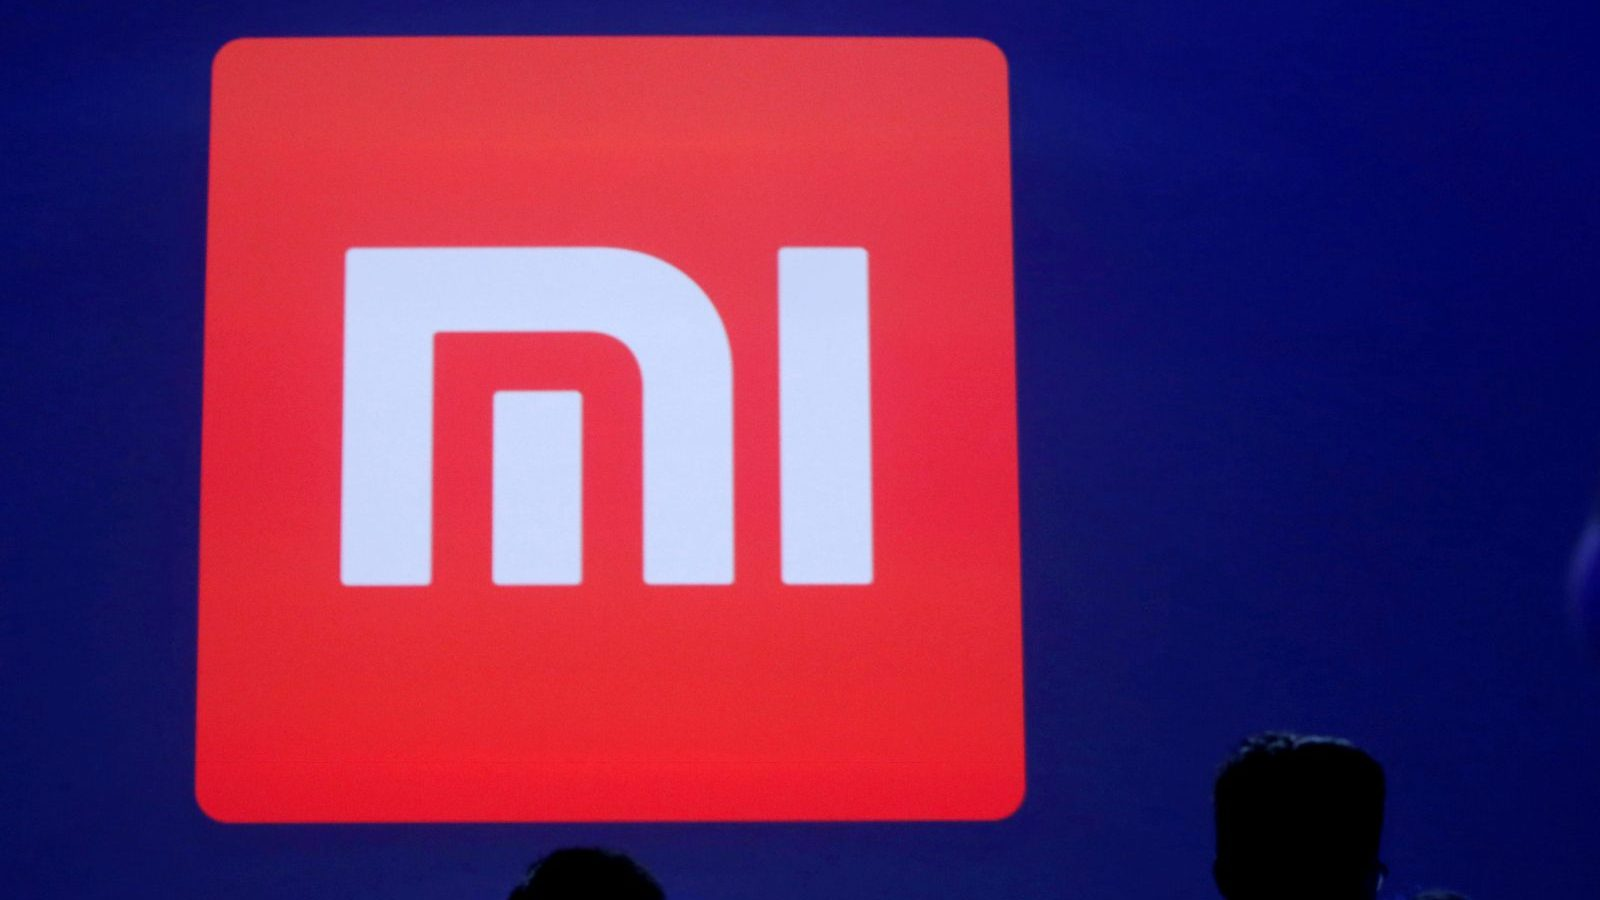 Attendants are silhouetted in front of Xiaomi's logo at a venue for the launch ceremony of Xiaomi's new smart phone Mi Max in Beijing, May 10, 2016. REUTERS/Kim Kyung-Hoon/File Photo - S1AEUACJUDAA